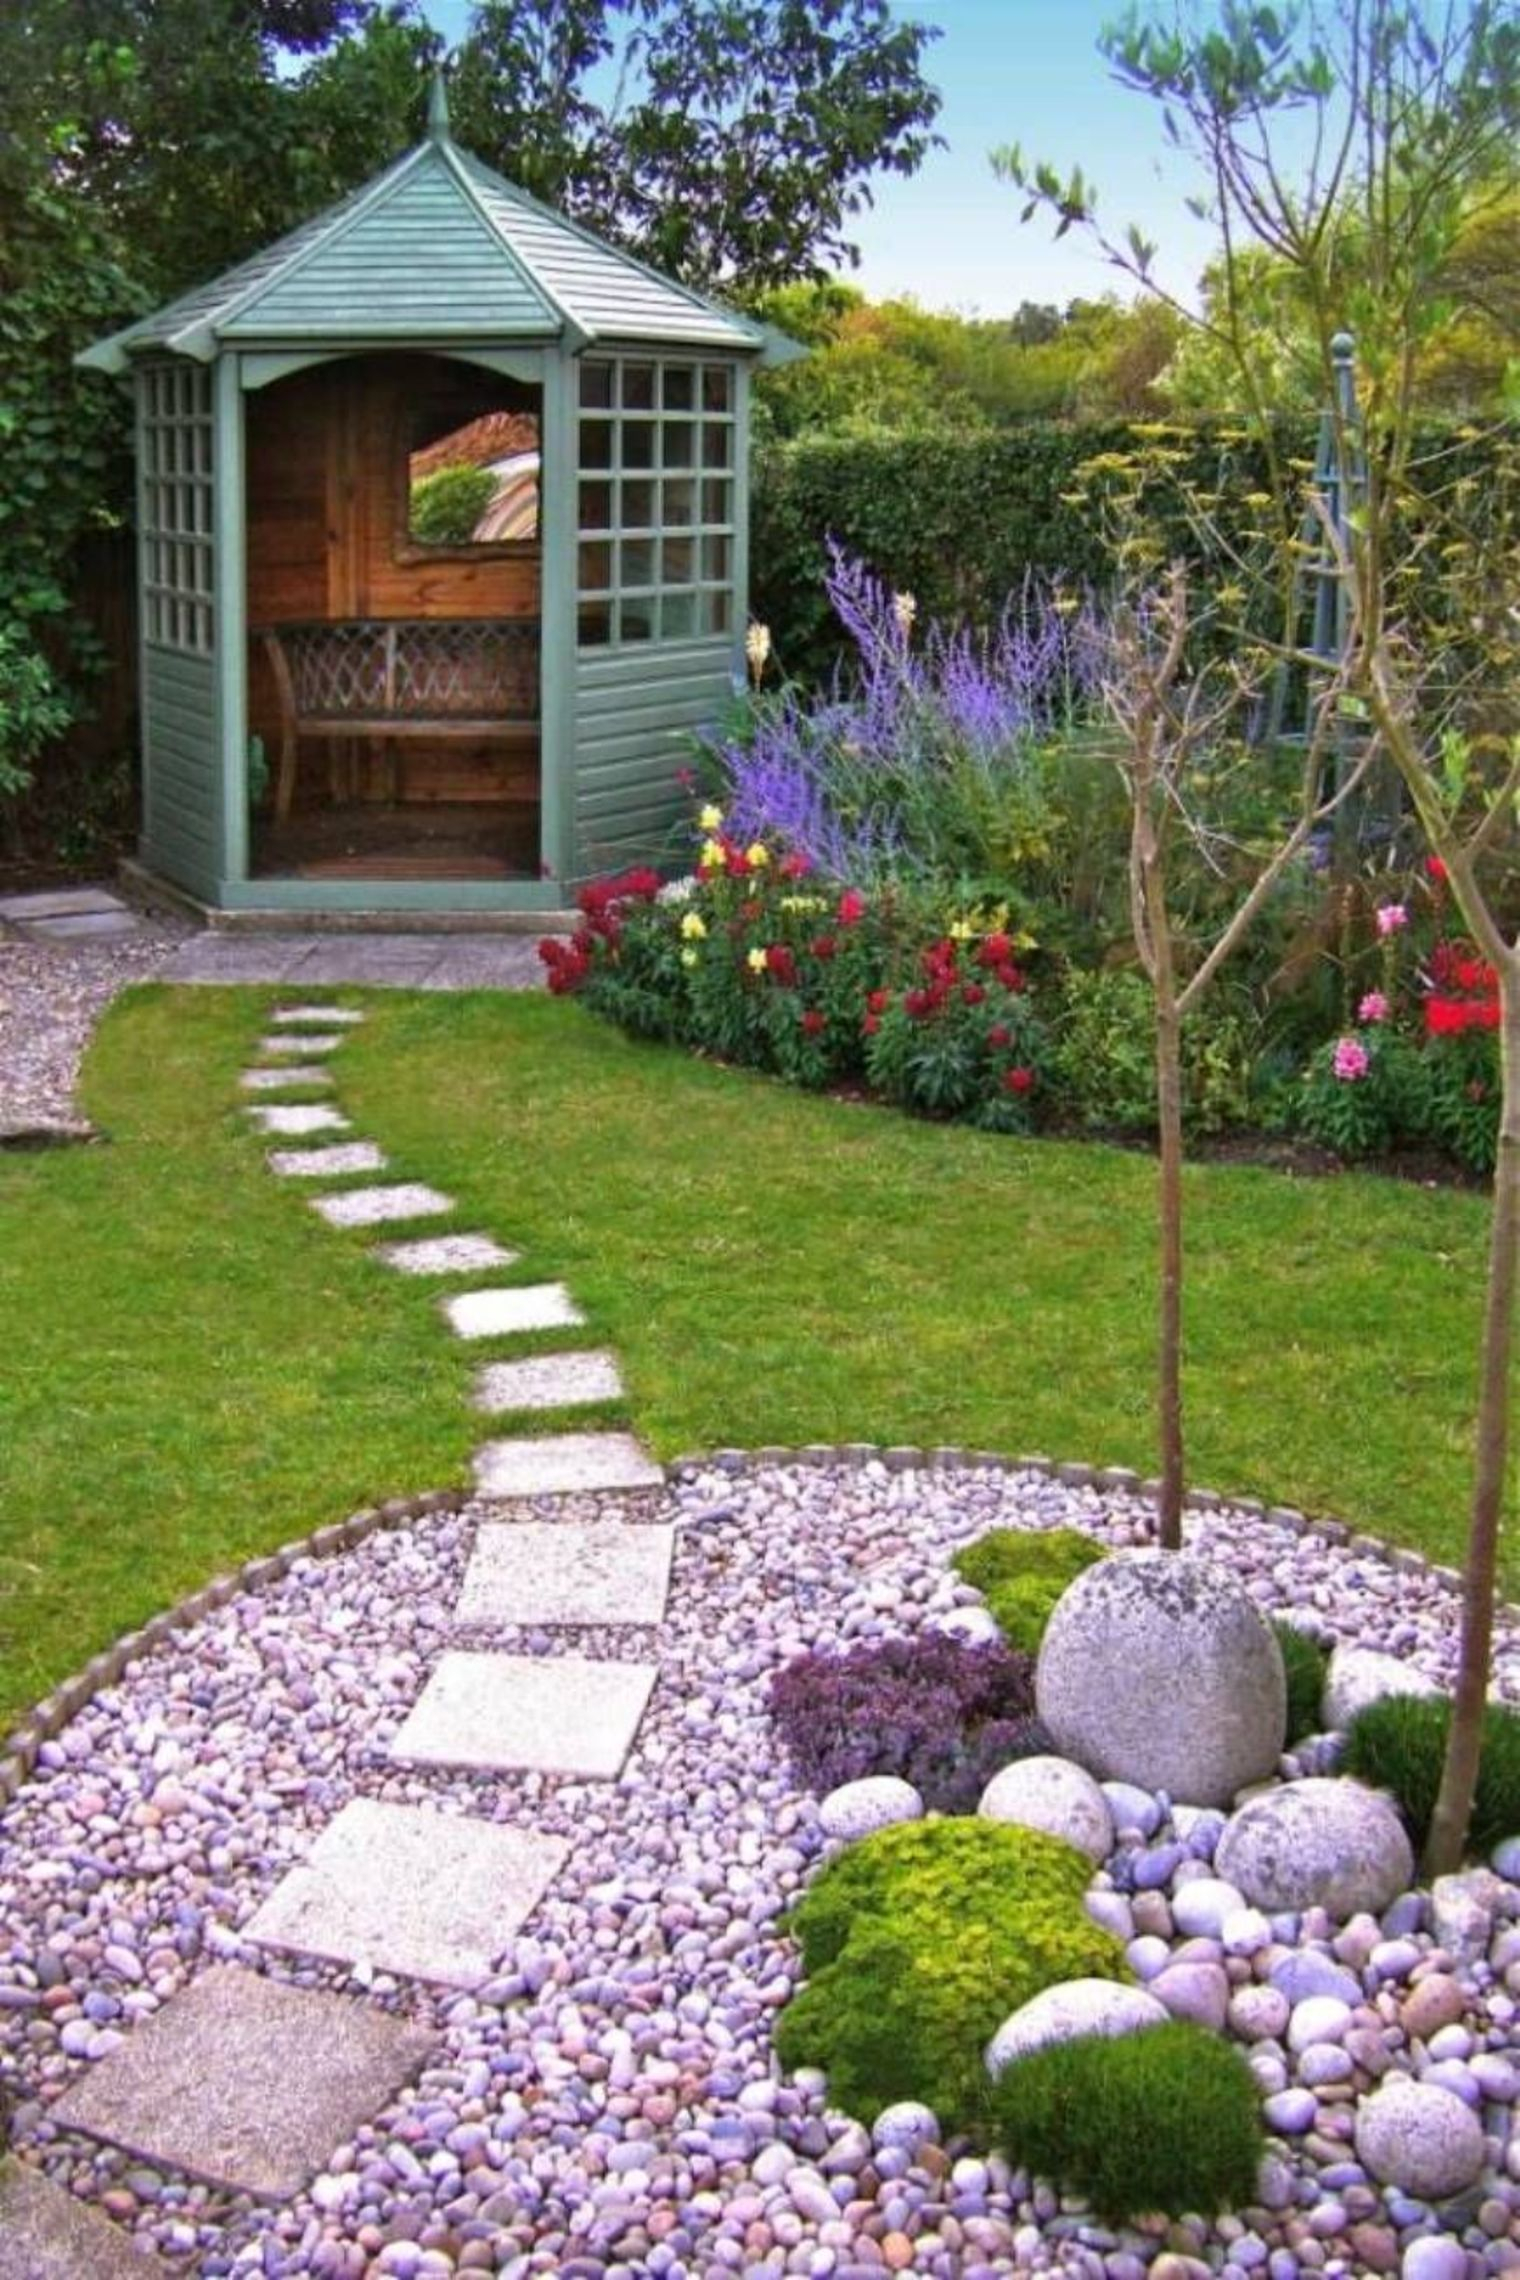 30 Best Decorative Stepping Stones Ideas And Designs 2019 with 15 Clever Initiatives of How to Build Decorative Stones For Backyard